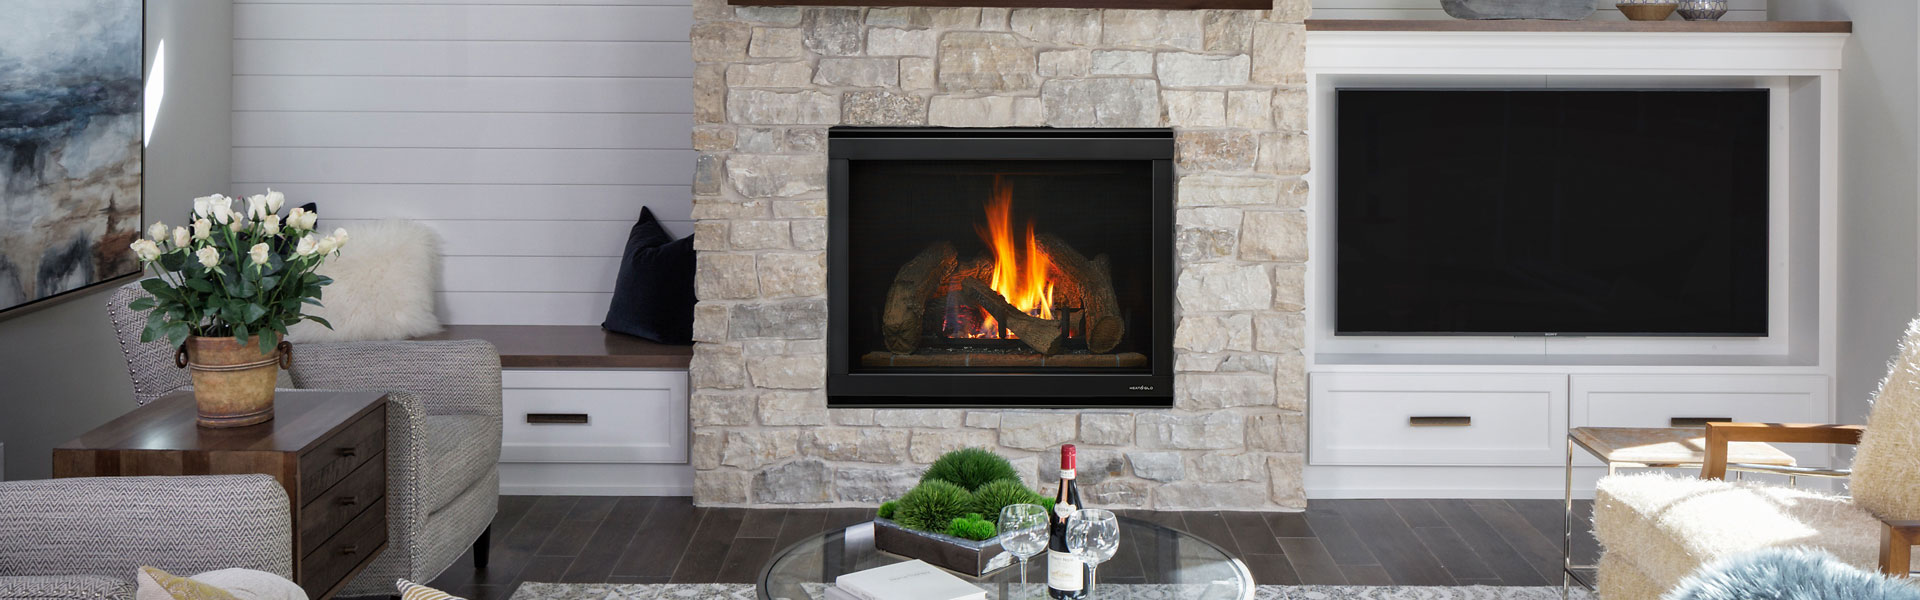 6000C-Gas-Fireplace